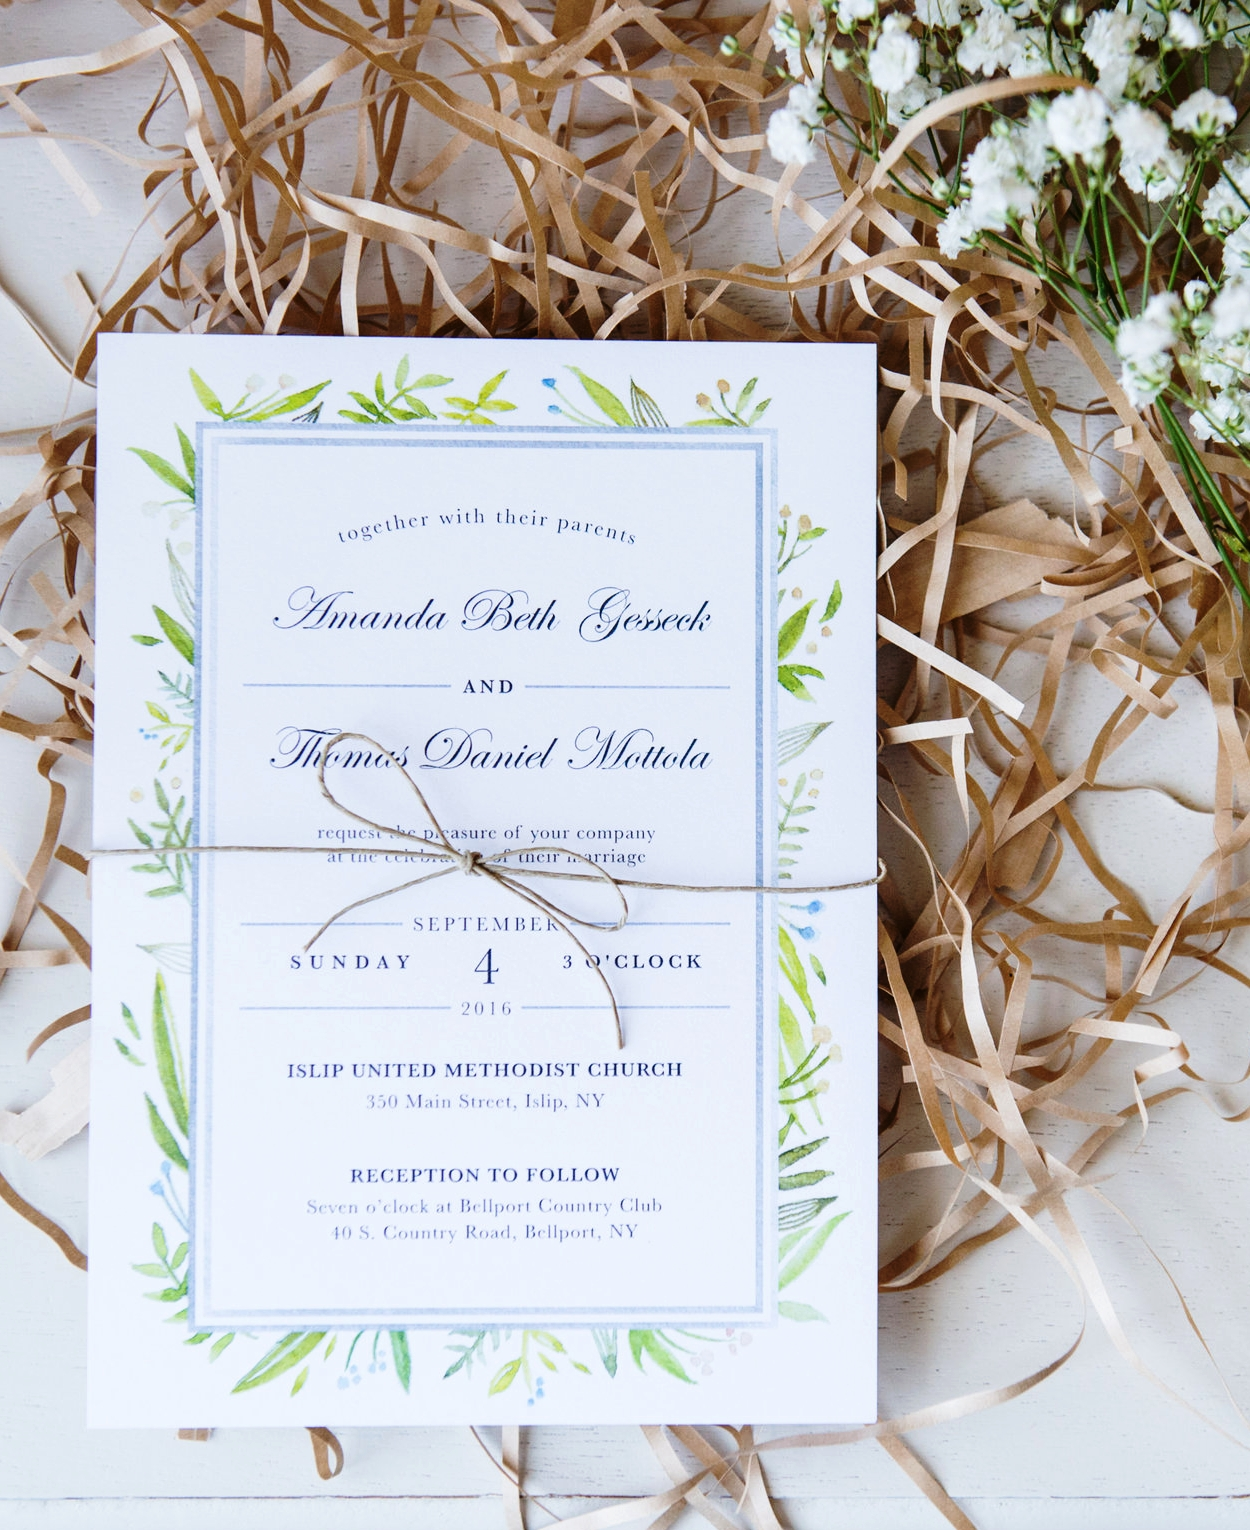 amanda + tom's wedding,august 2015 - Held in Long Island, NY, Amanda and Tom Mottola wanted handcrafted elements to support the experience of their waterfront wedding. From watercolor invitations to hand painted signs at the event, I worked closely with the couple to bring their vision to life.Photos by Lennon Photo.Left: Invitation front